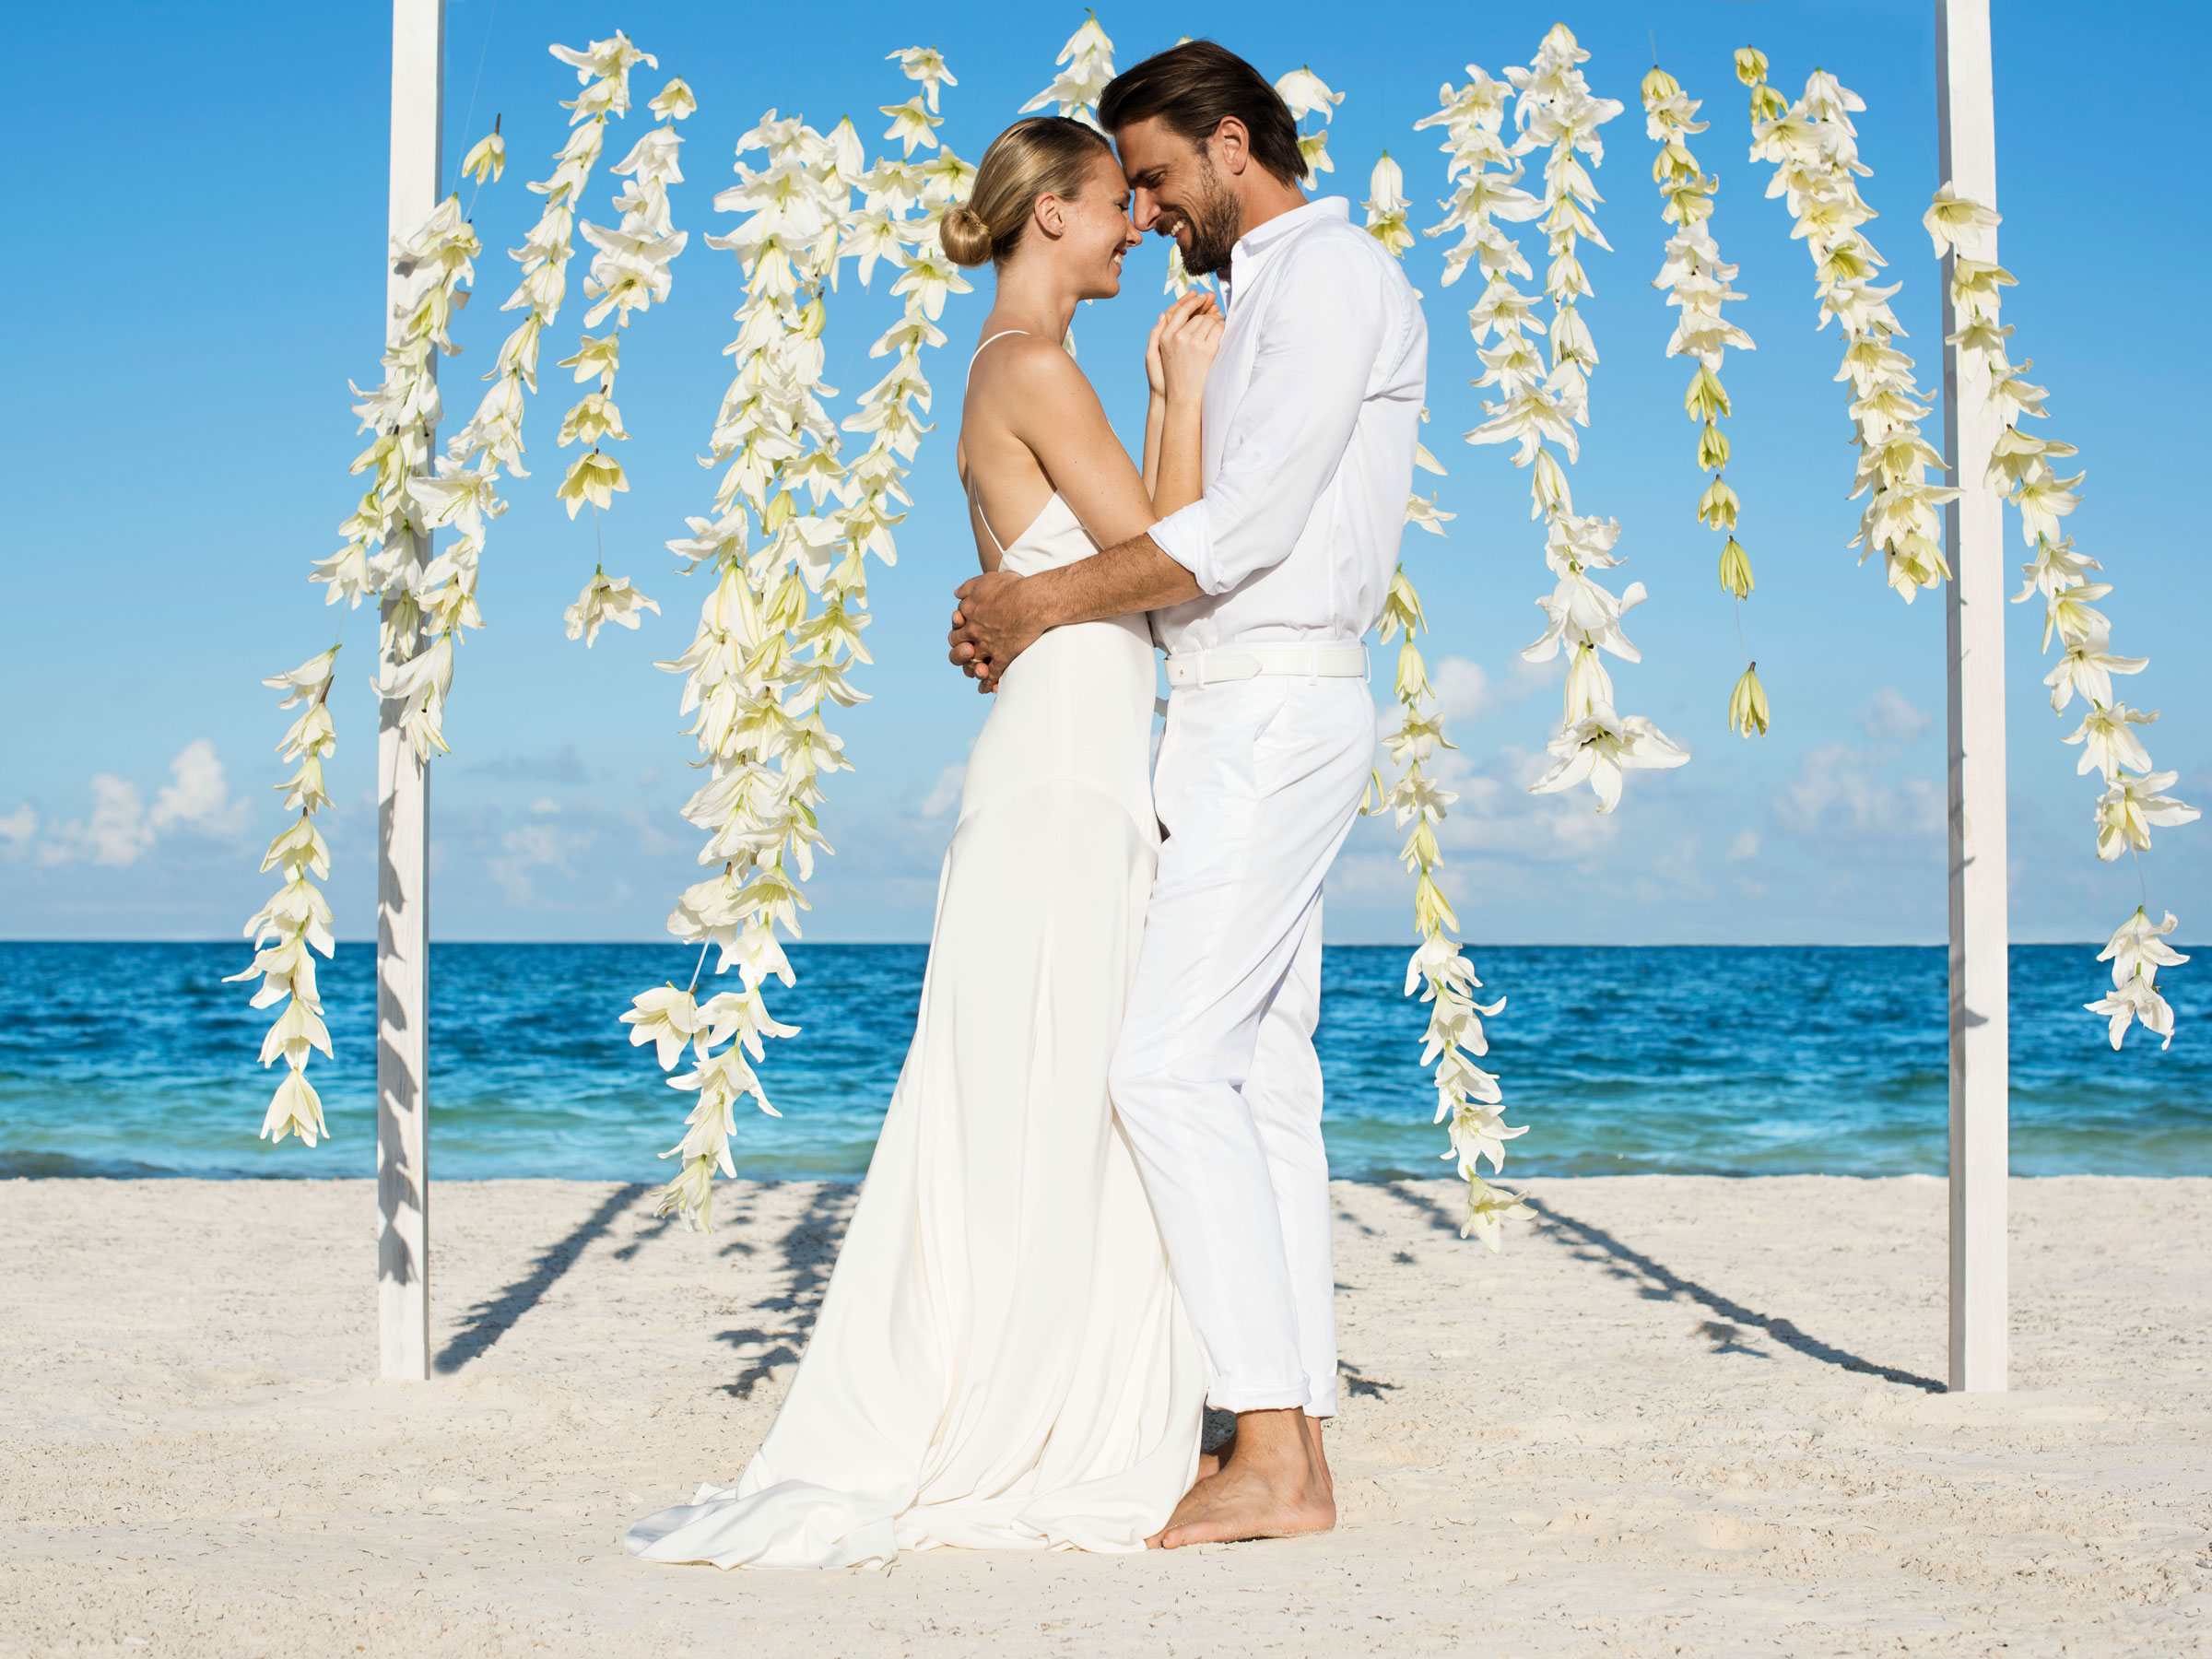 Party like there's no mañana at your amazing Mexican destination wedding by the beach!